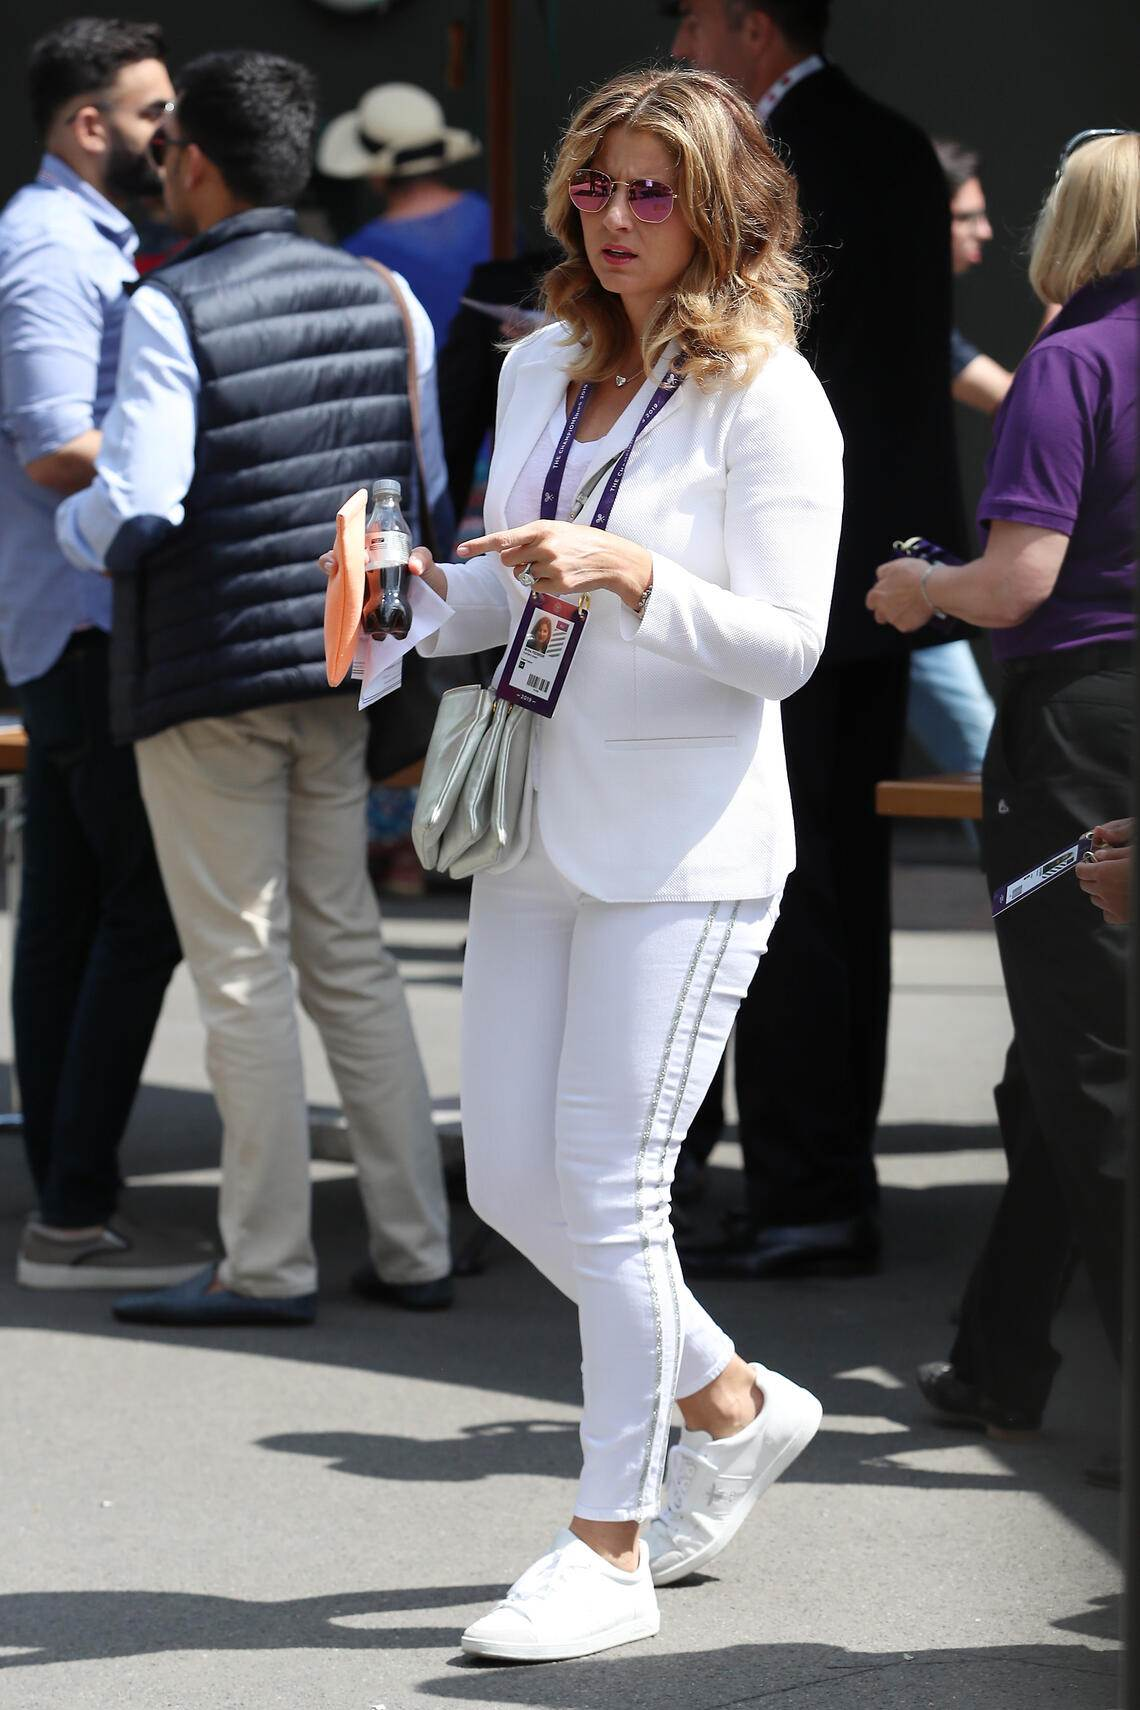 LONDON, ENGLAND - JULY 02: Mirka Federer attends day 2 of the Wimbledon 2019 Tennis Championships at All England Lawn Tennis and Croquet Club on July 02, 2019 in London, England. (Photo by Neil Mockford/GC Images)